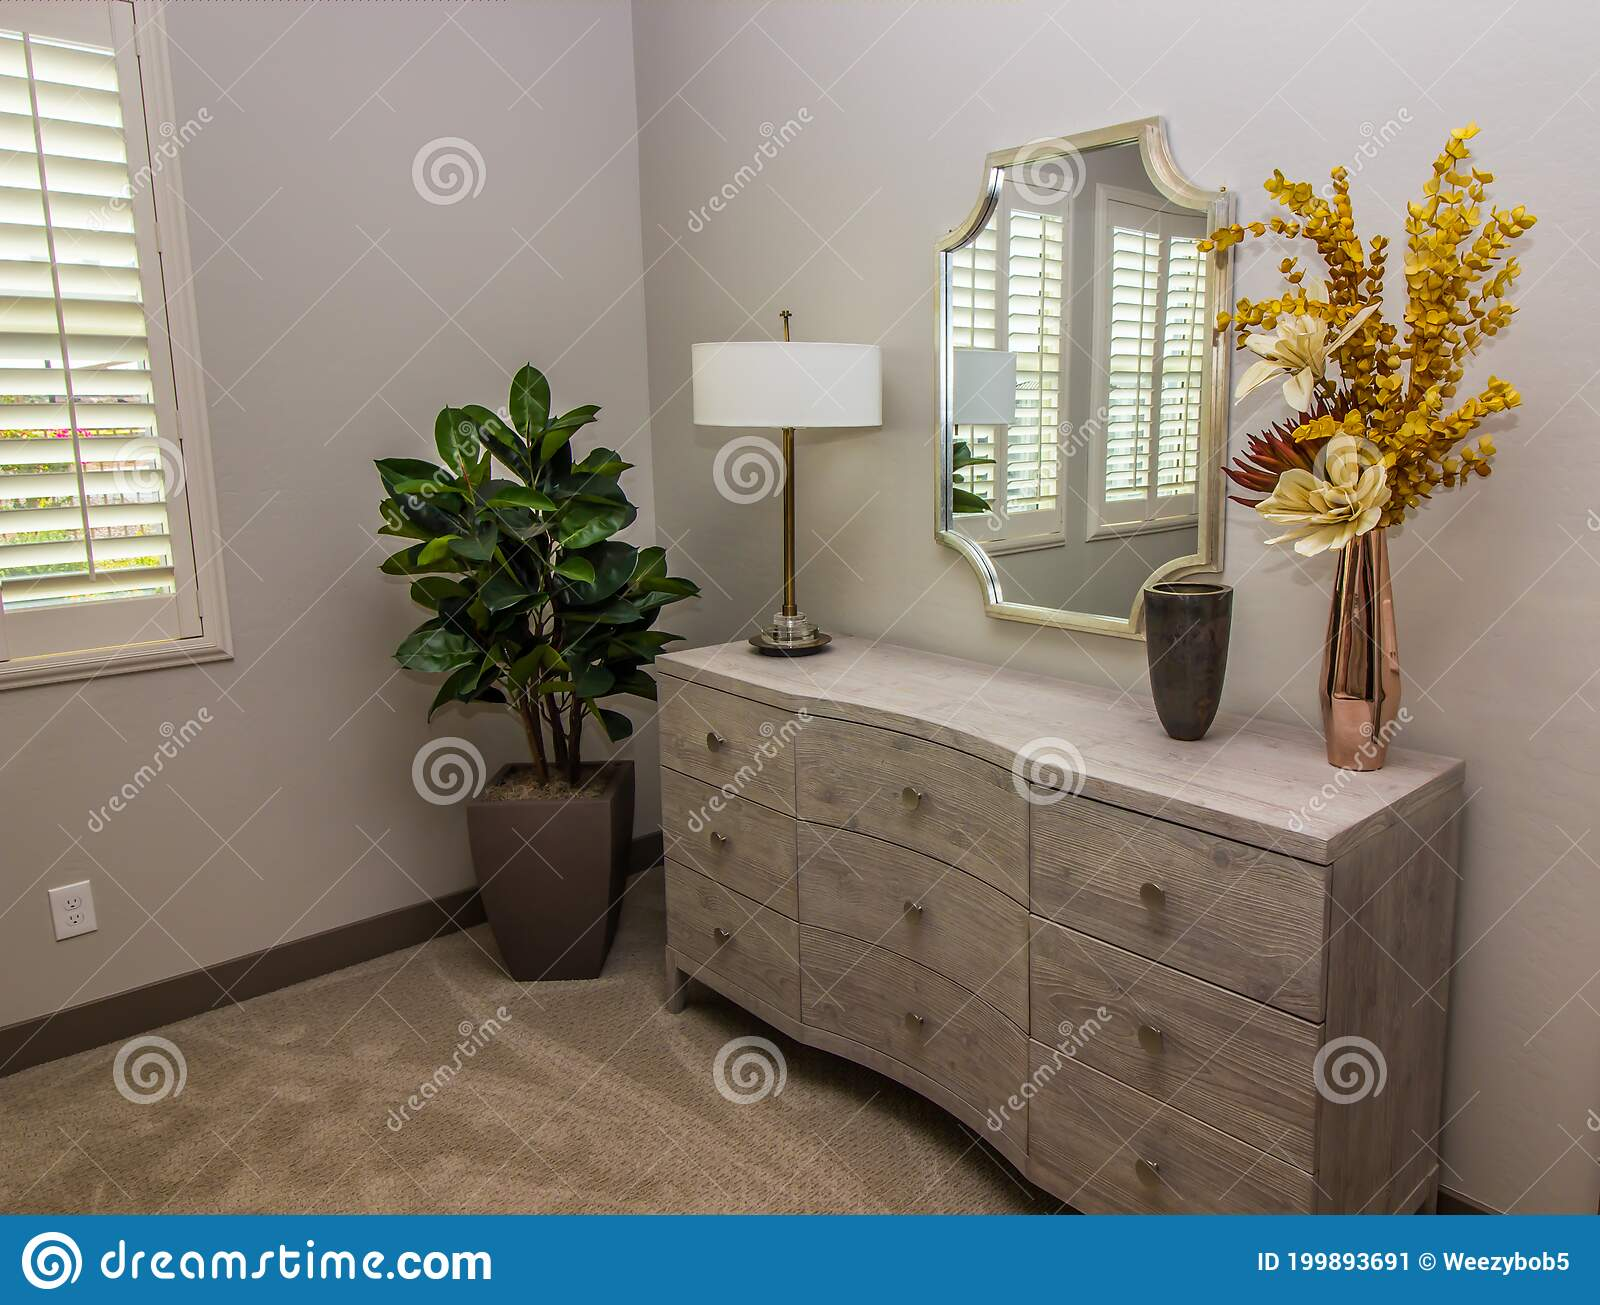 932 Bedroom Dresser Mirror Photos Free Royalty Free Stock Photos From Dreamstime